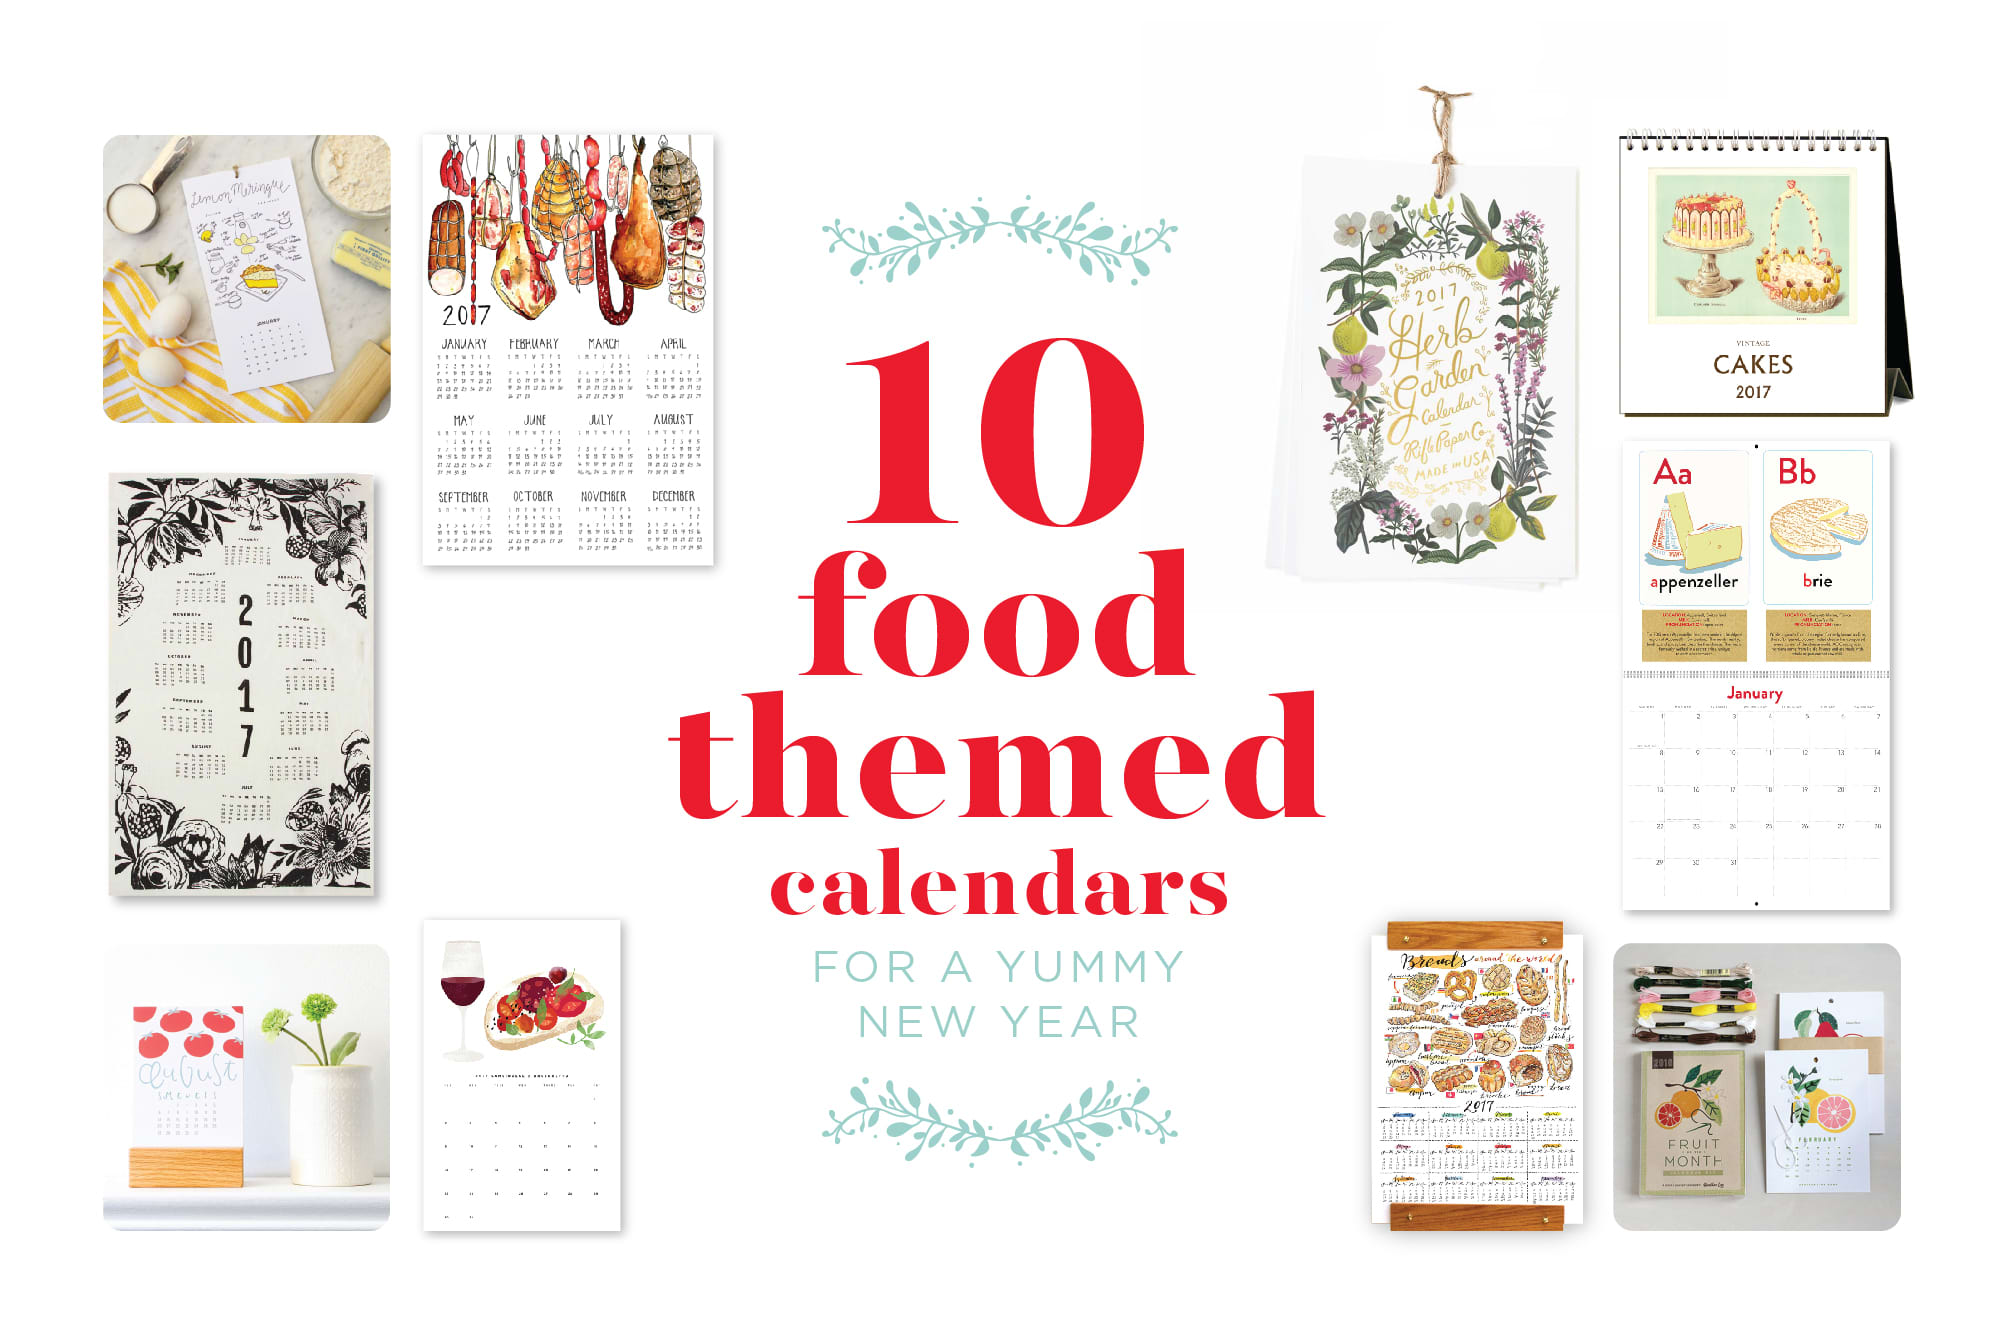 10 Food-Themed Calendars for a Yummy New Year: gallery image 1